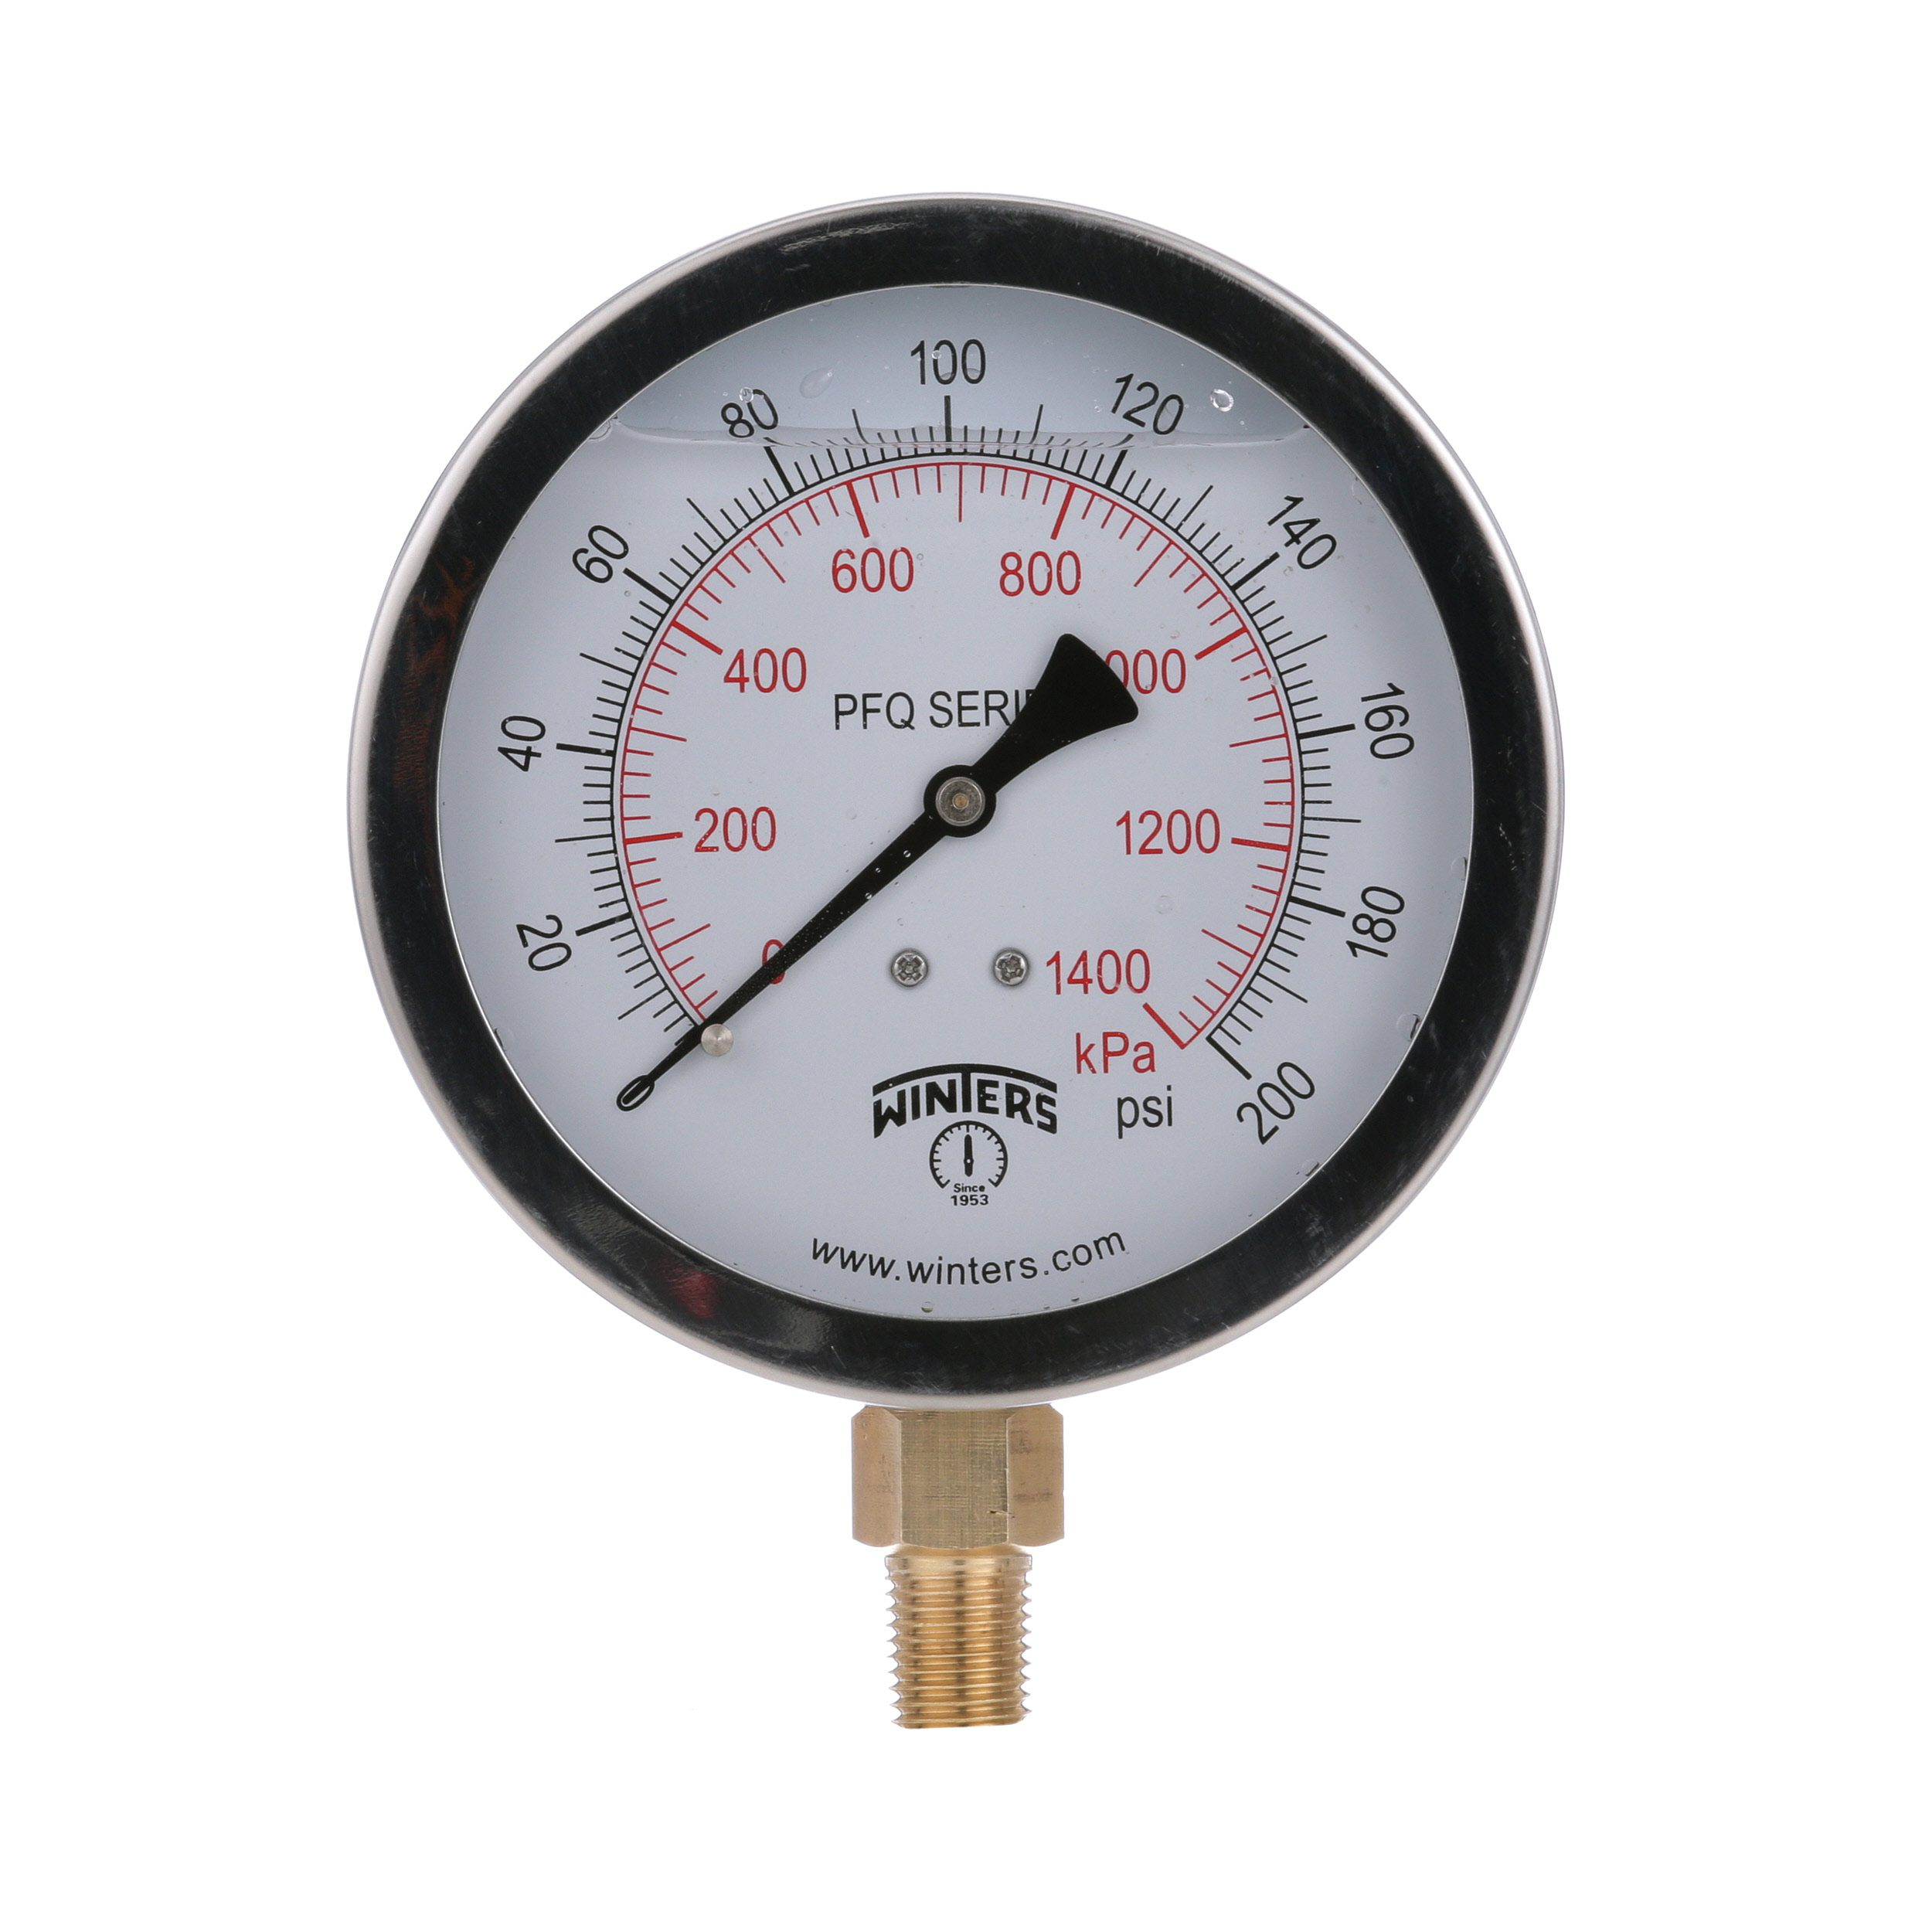 PFQ STAINLESS STEEL LIQUID FILLED PRESSURE GAUGE / PFQ-LF LEAD FREE SS LIQUID FILLED PRESSURE GAUGE